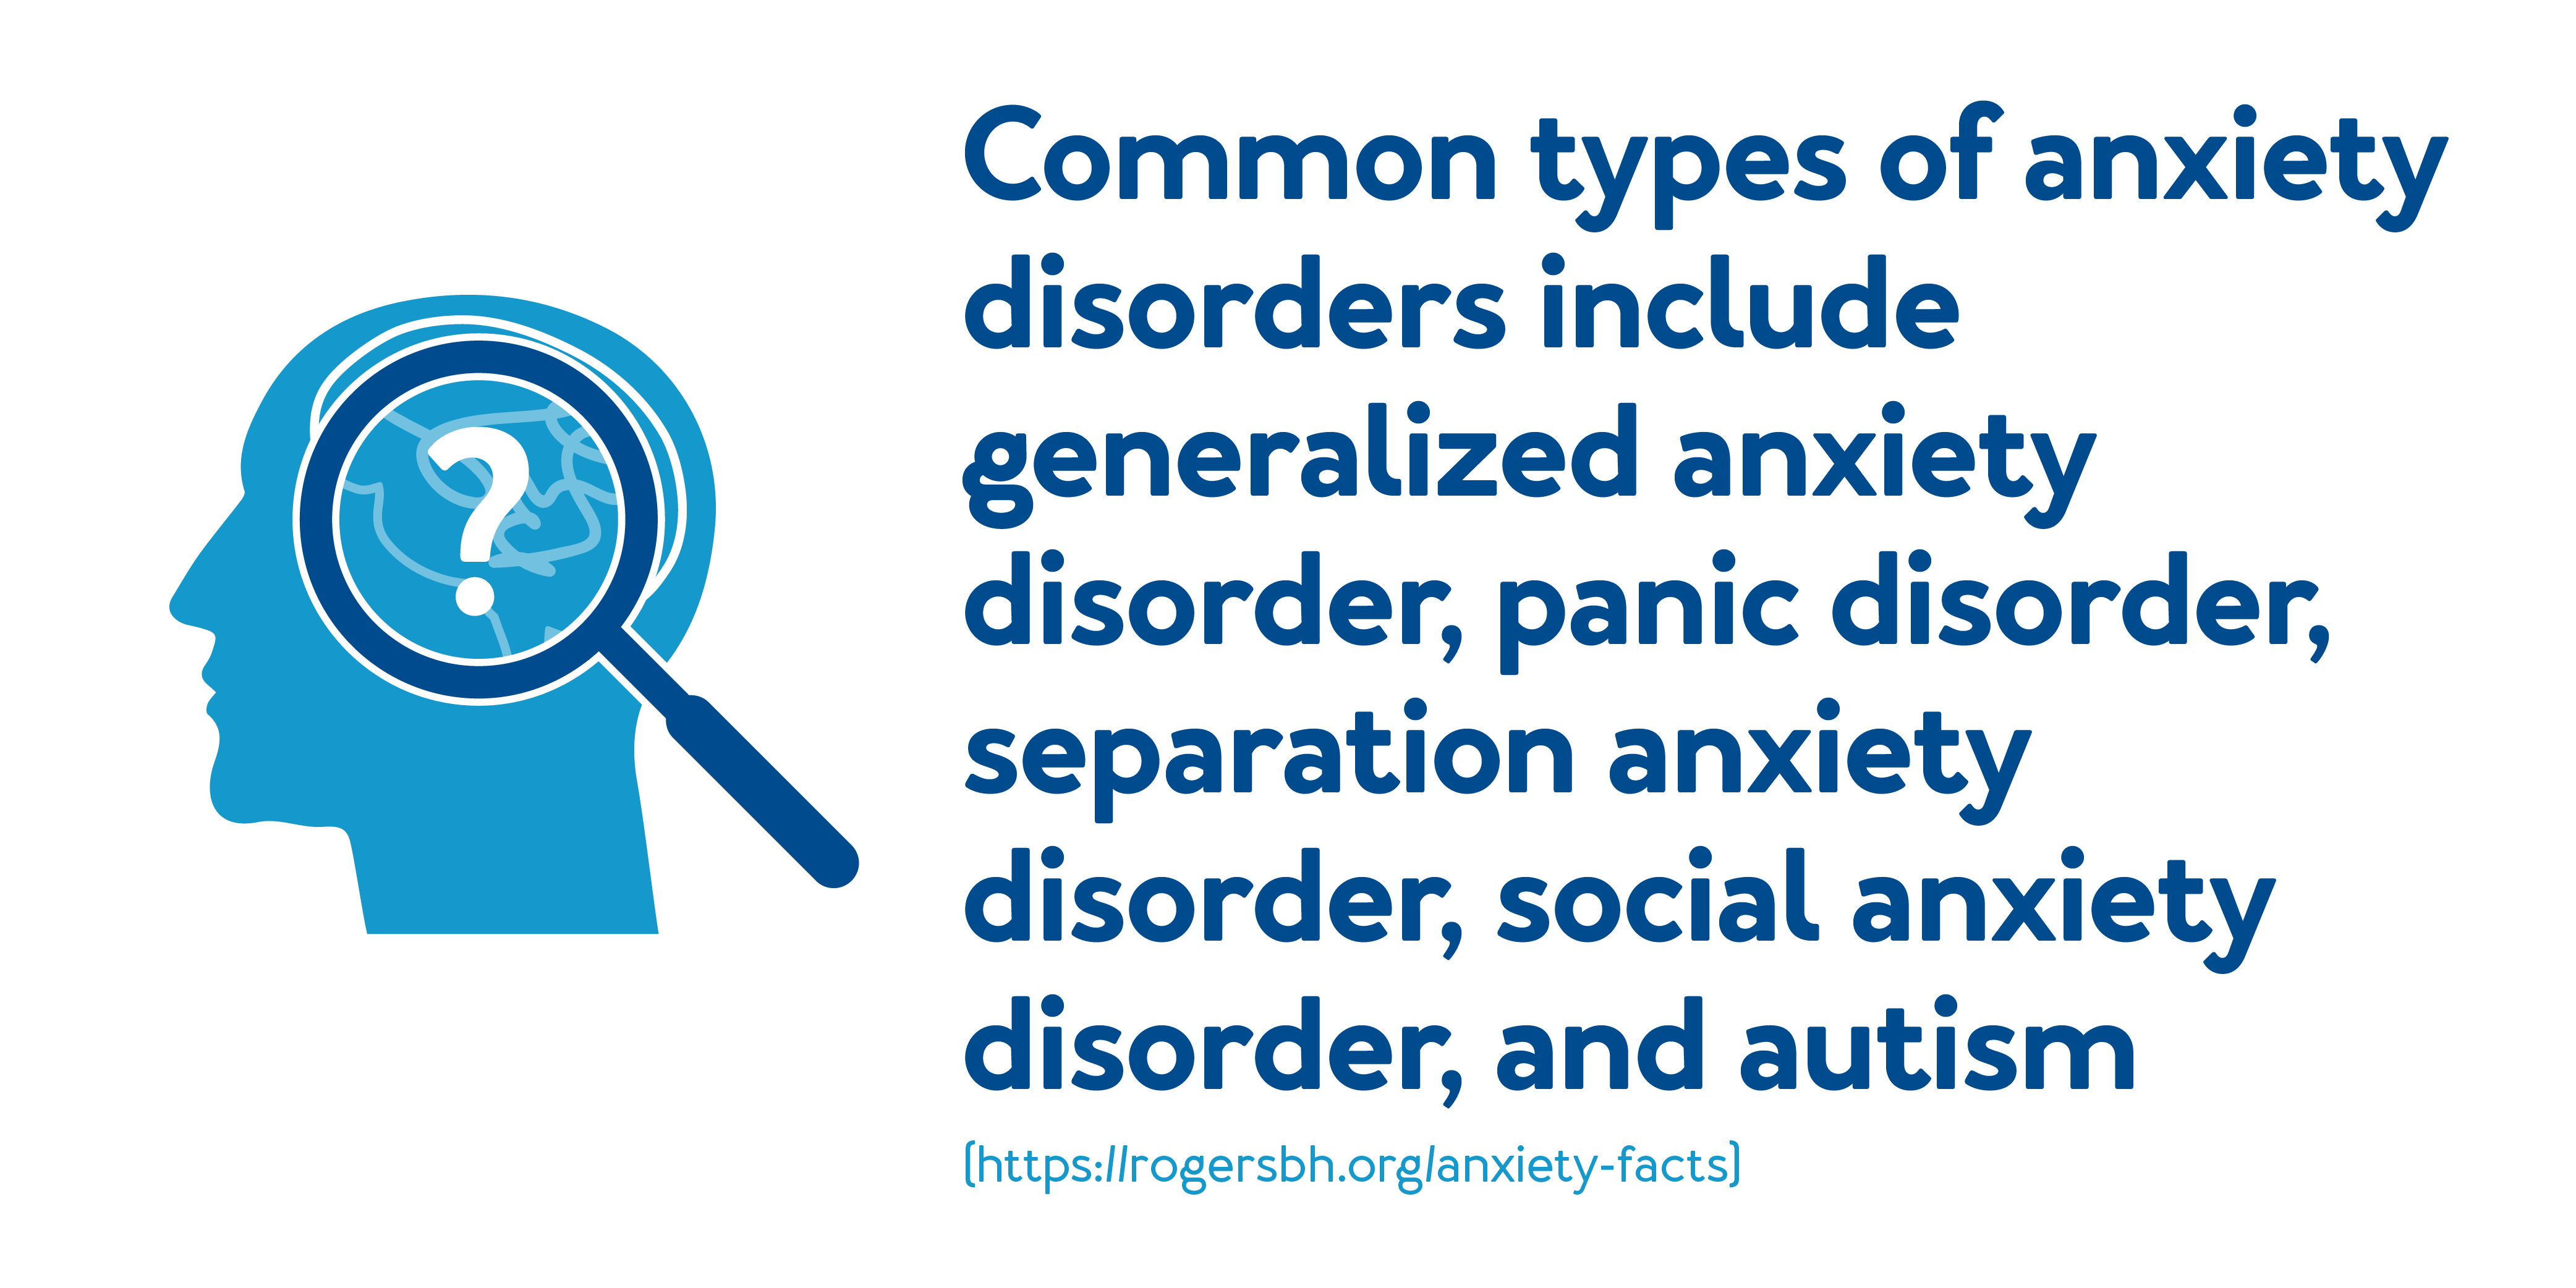 Common types of anxiety disorders include generalized anxiety disorder, panic disorder, separation anxiety disorder, social anxiety disorder, and autism.